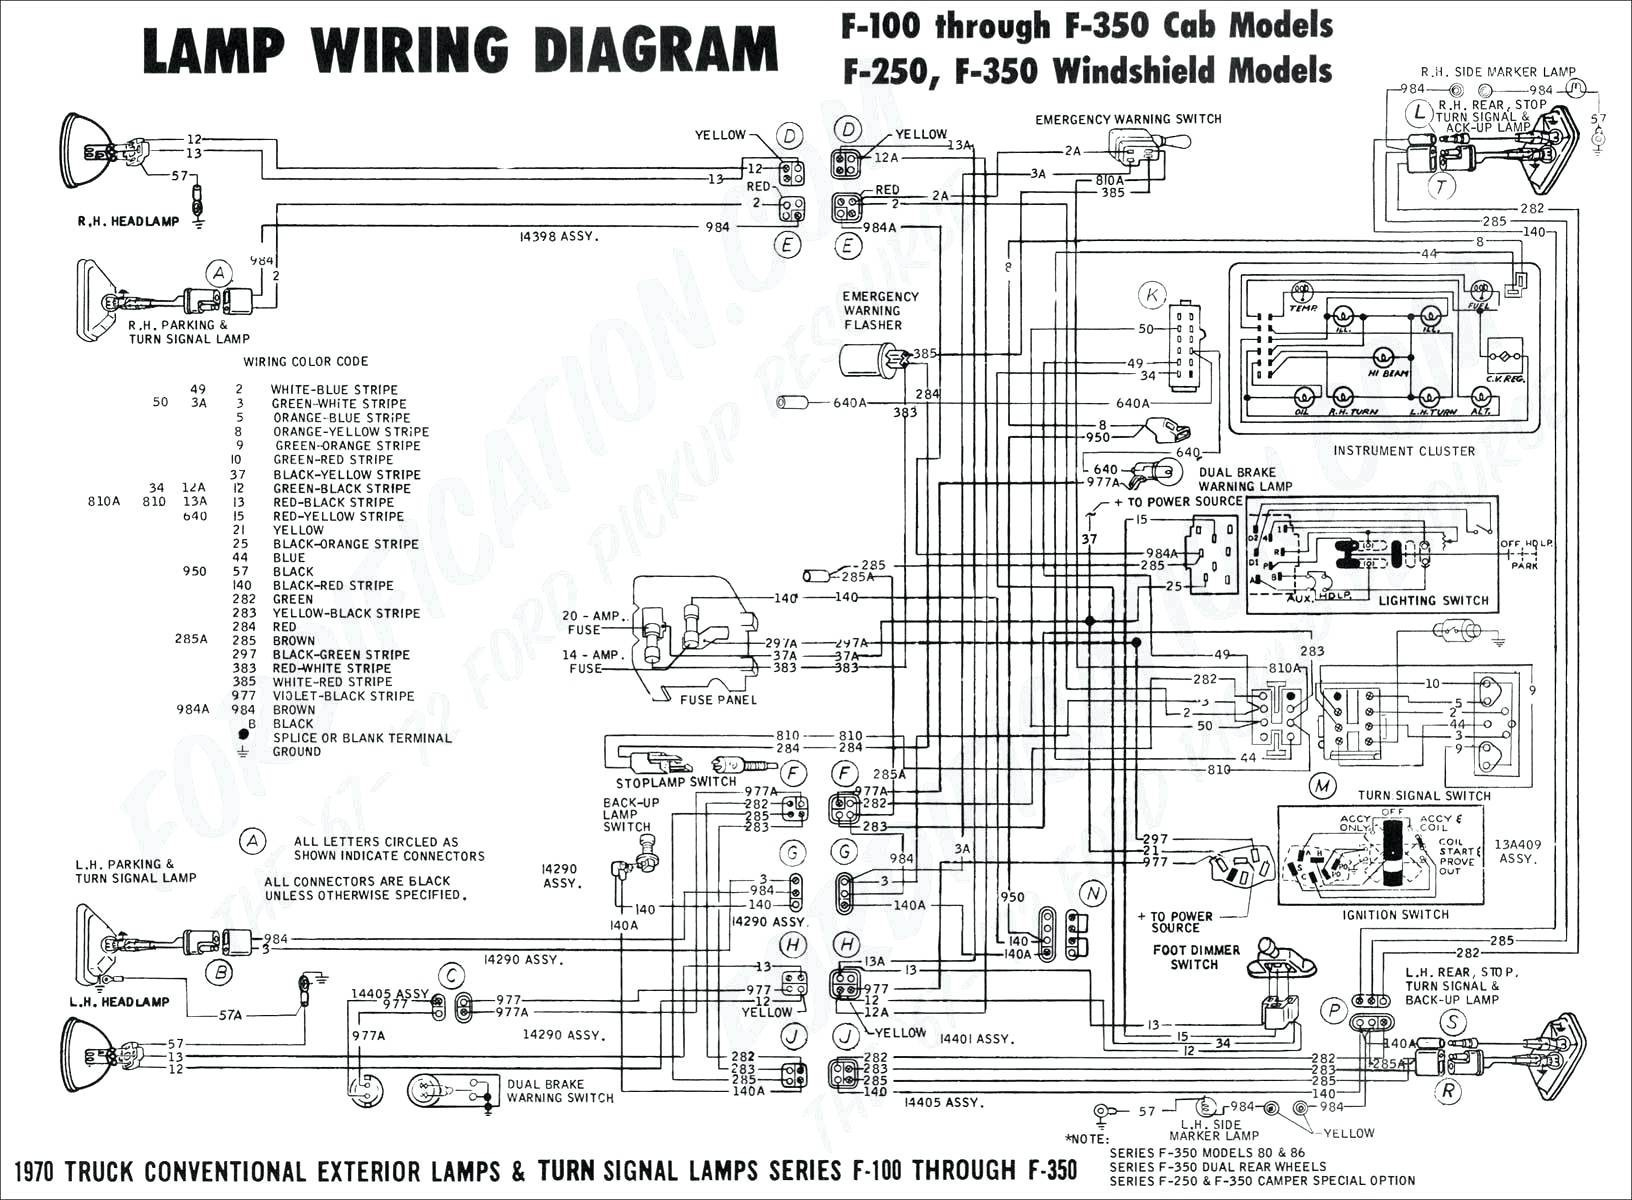 Chevy Truck Spark Plug Wires Diagram | Wiring Diagram on